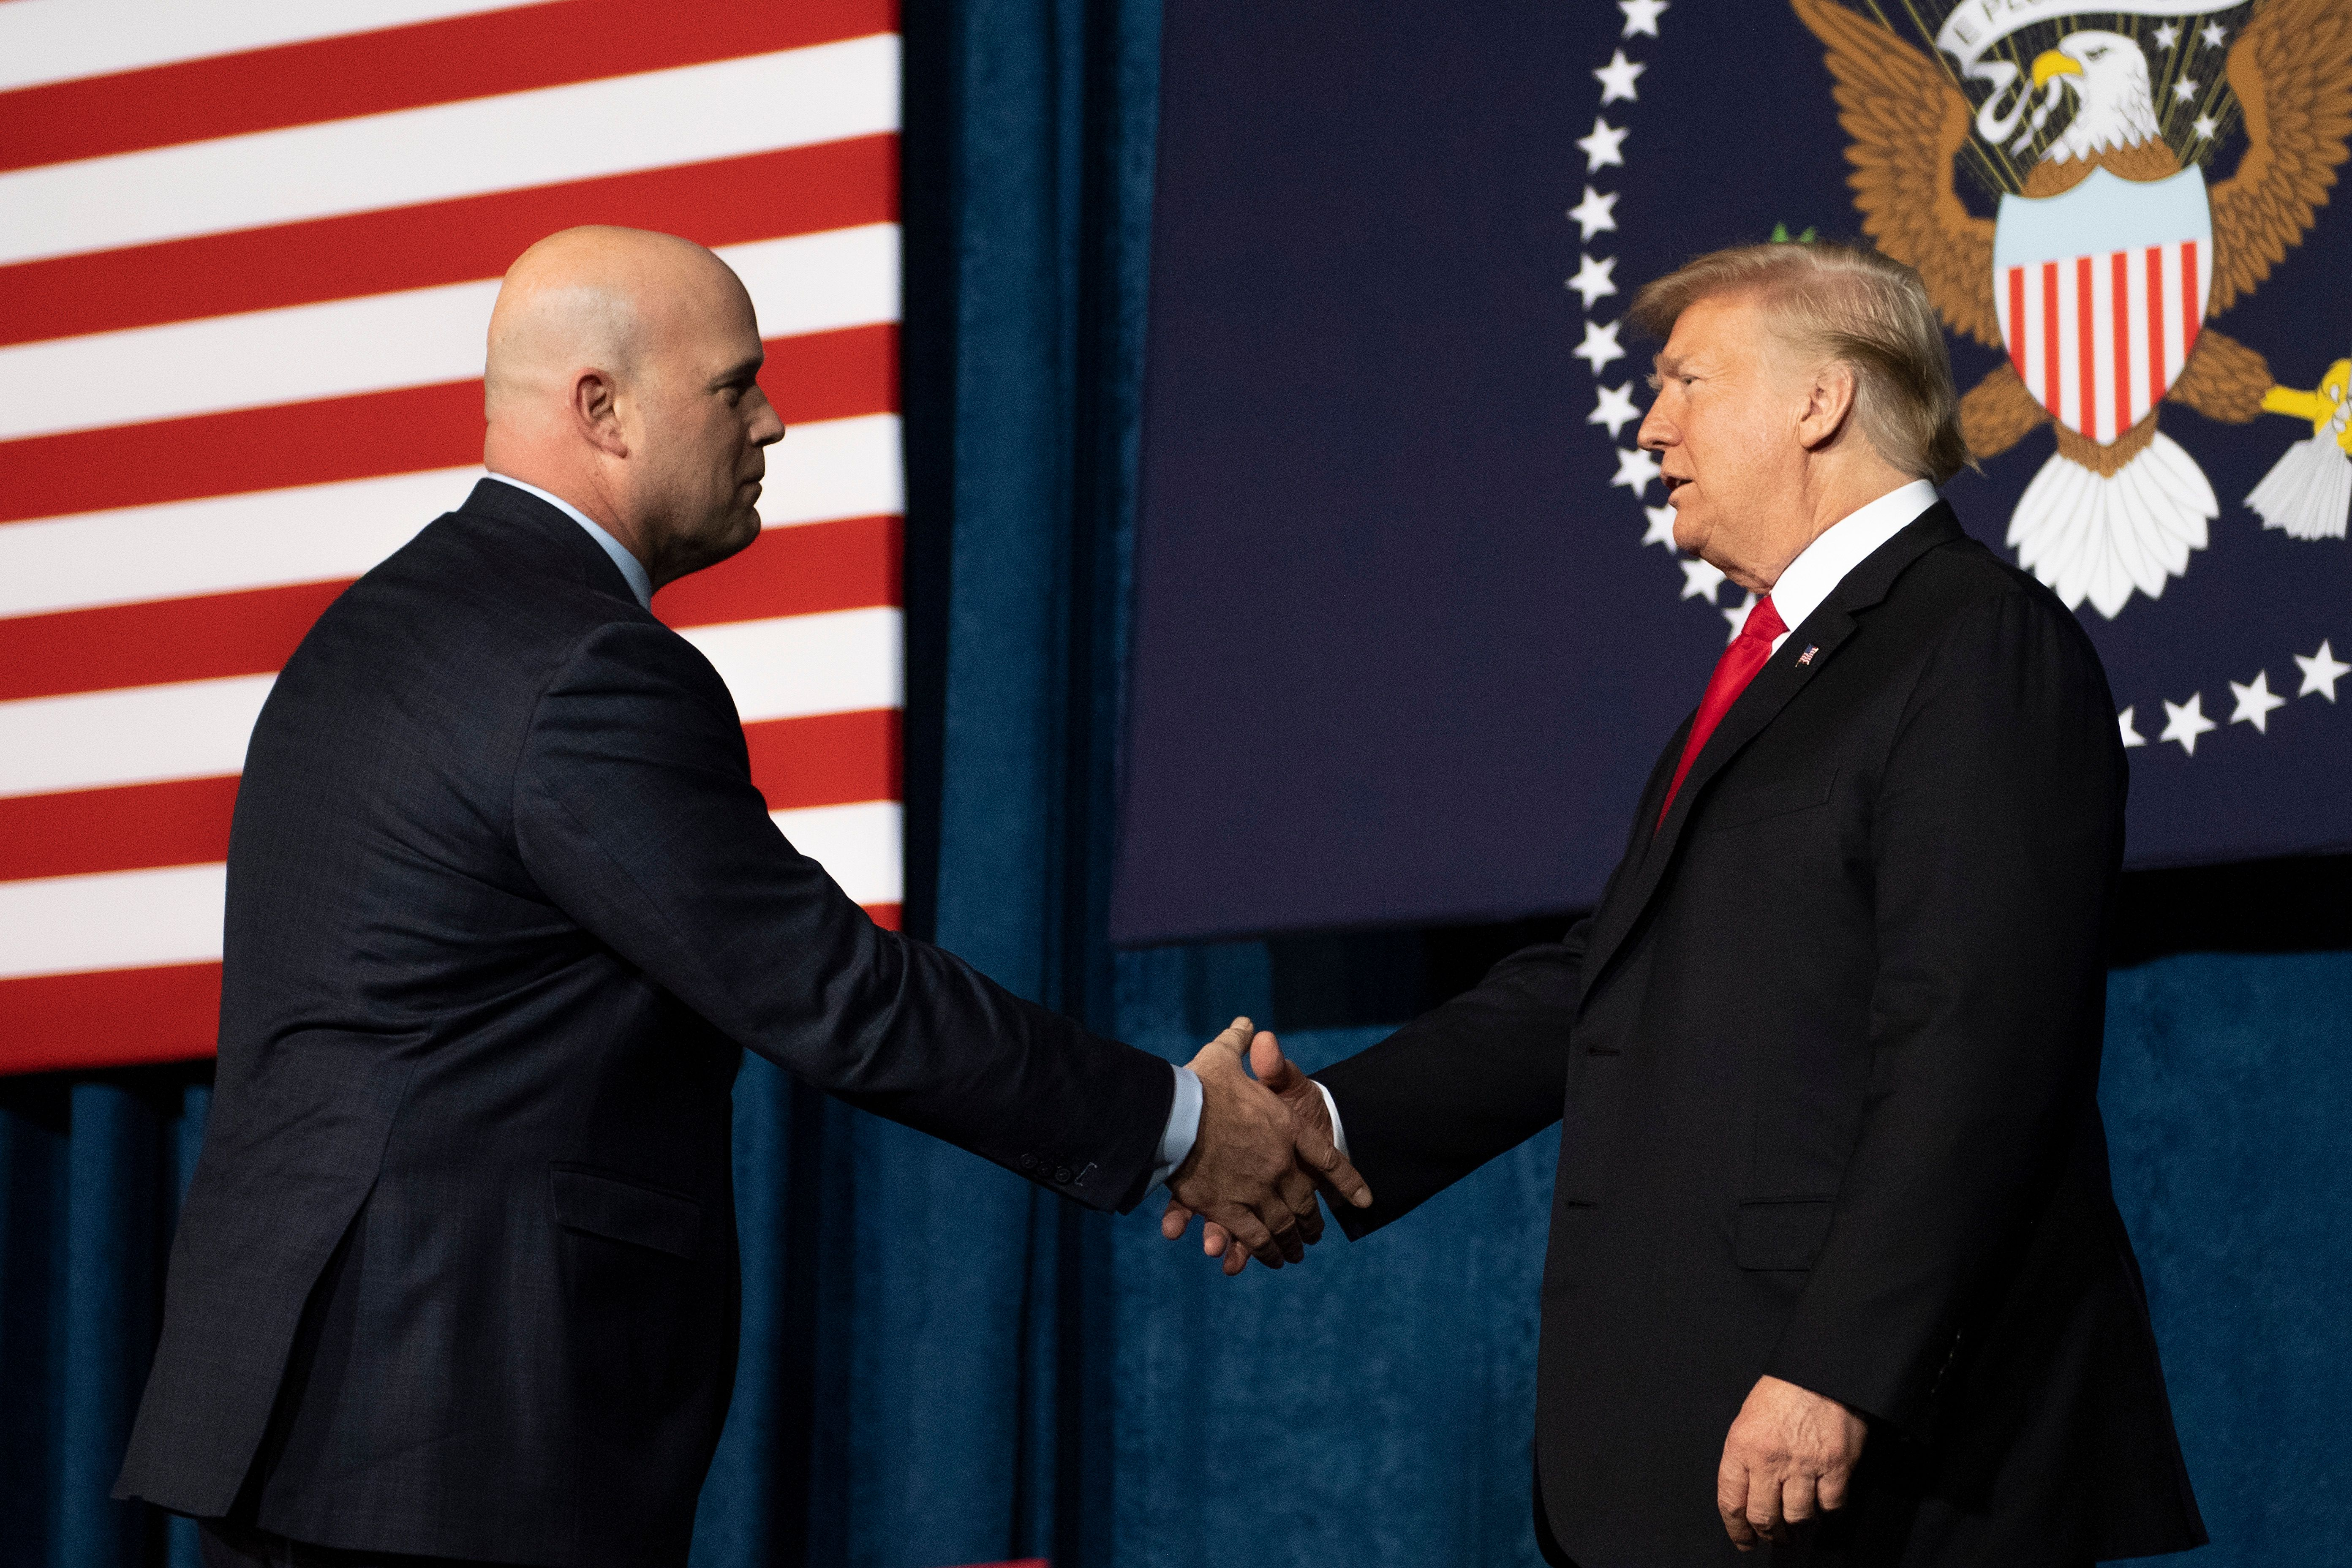 President Trump shakes hands with Acting US Attorney General Matt Whitaker